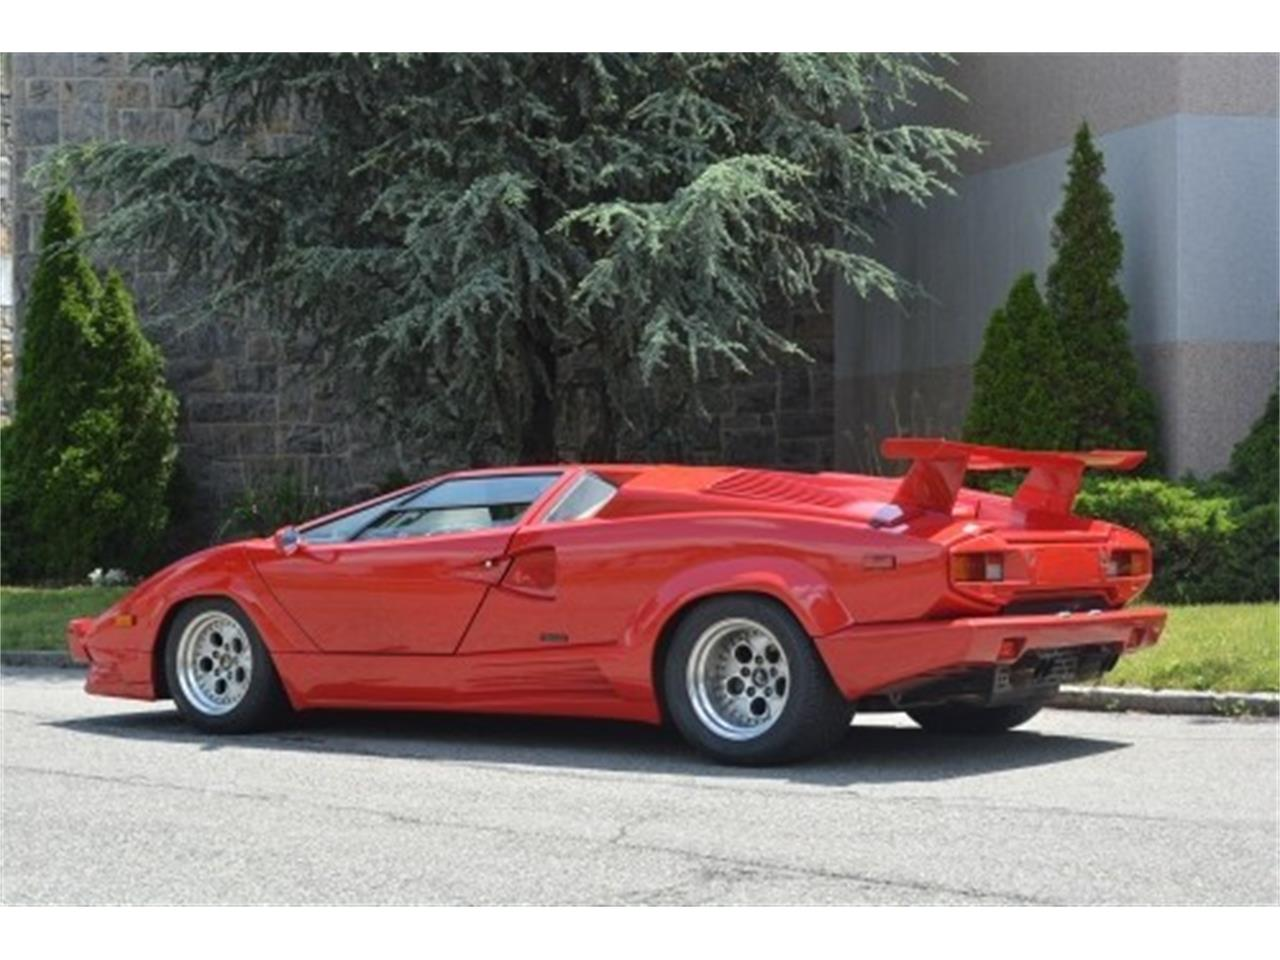 Large Picture of 1989 Lamborghini Countach located in New York - $249,500.00 - EYKT